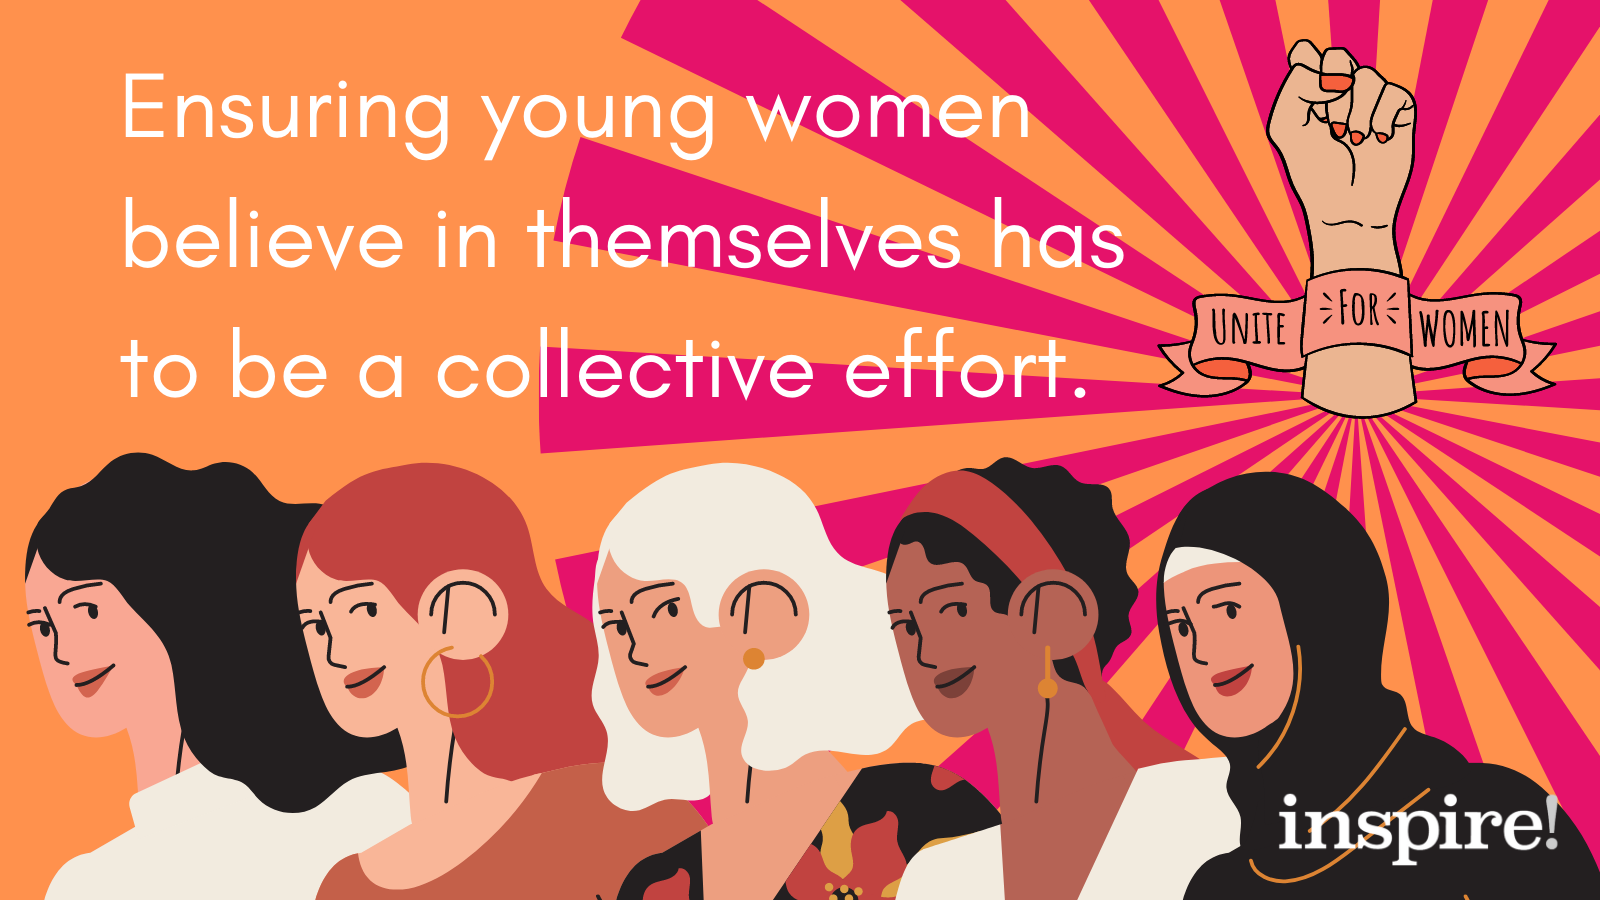 Ensuring young women believe in themselves has to be a collective effort.